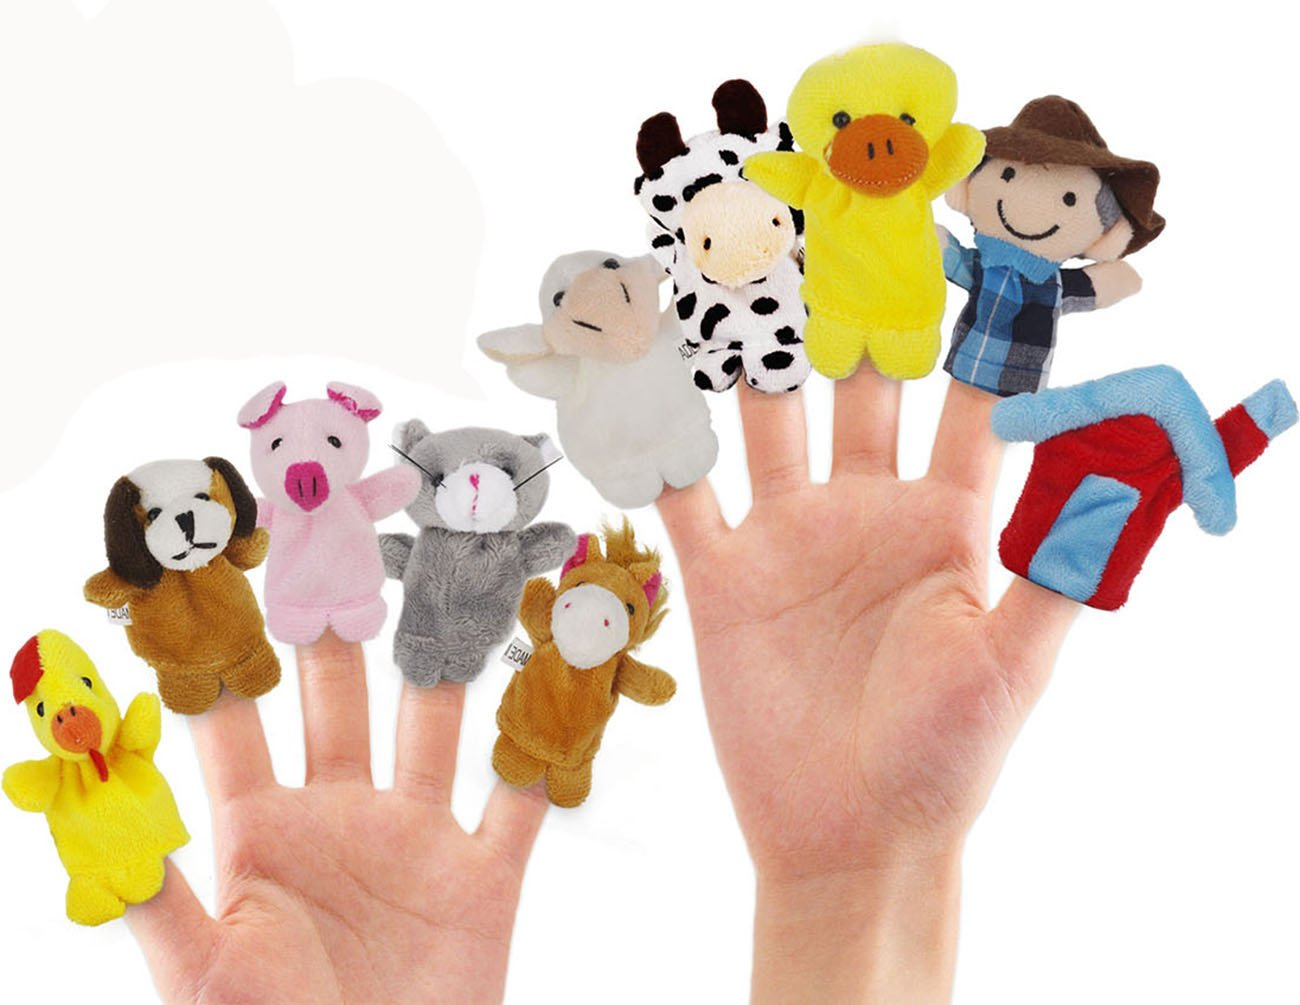 RIY 10Pcs Story Time Finger Puppets - Old Macdonald Had A Farm Educational Puppets RToy-55